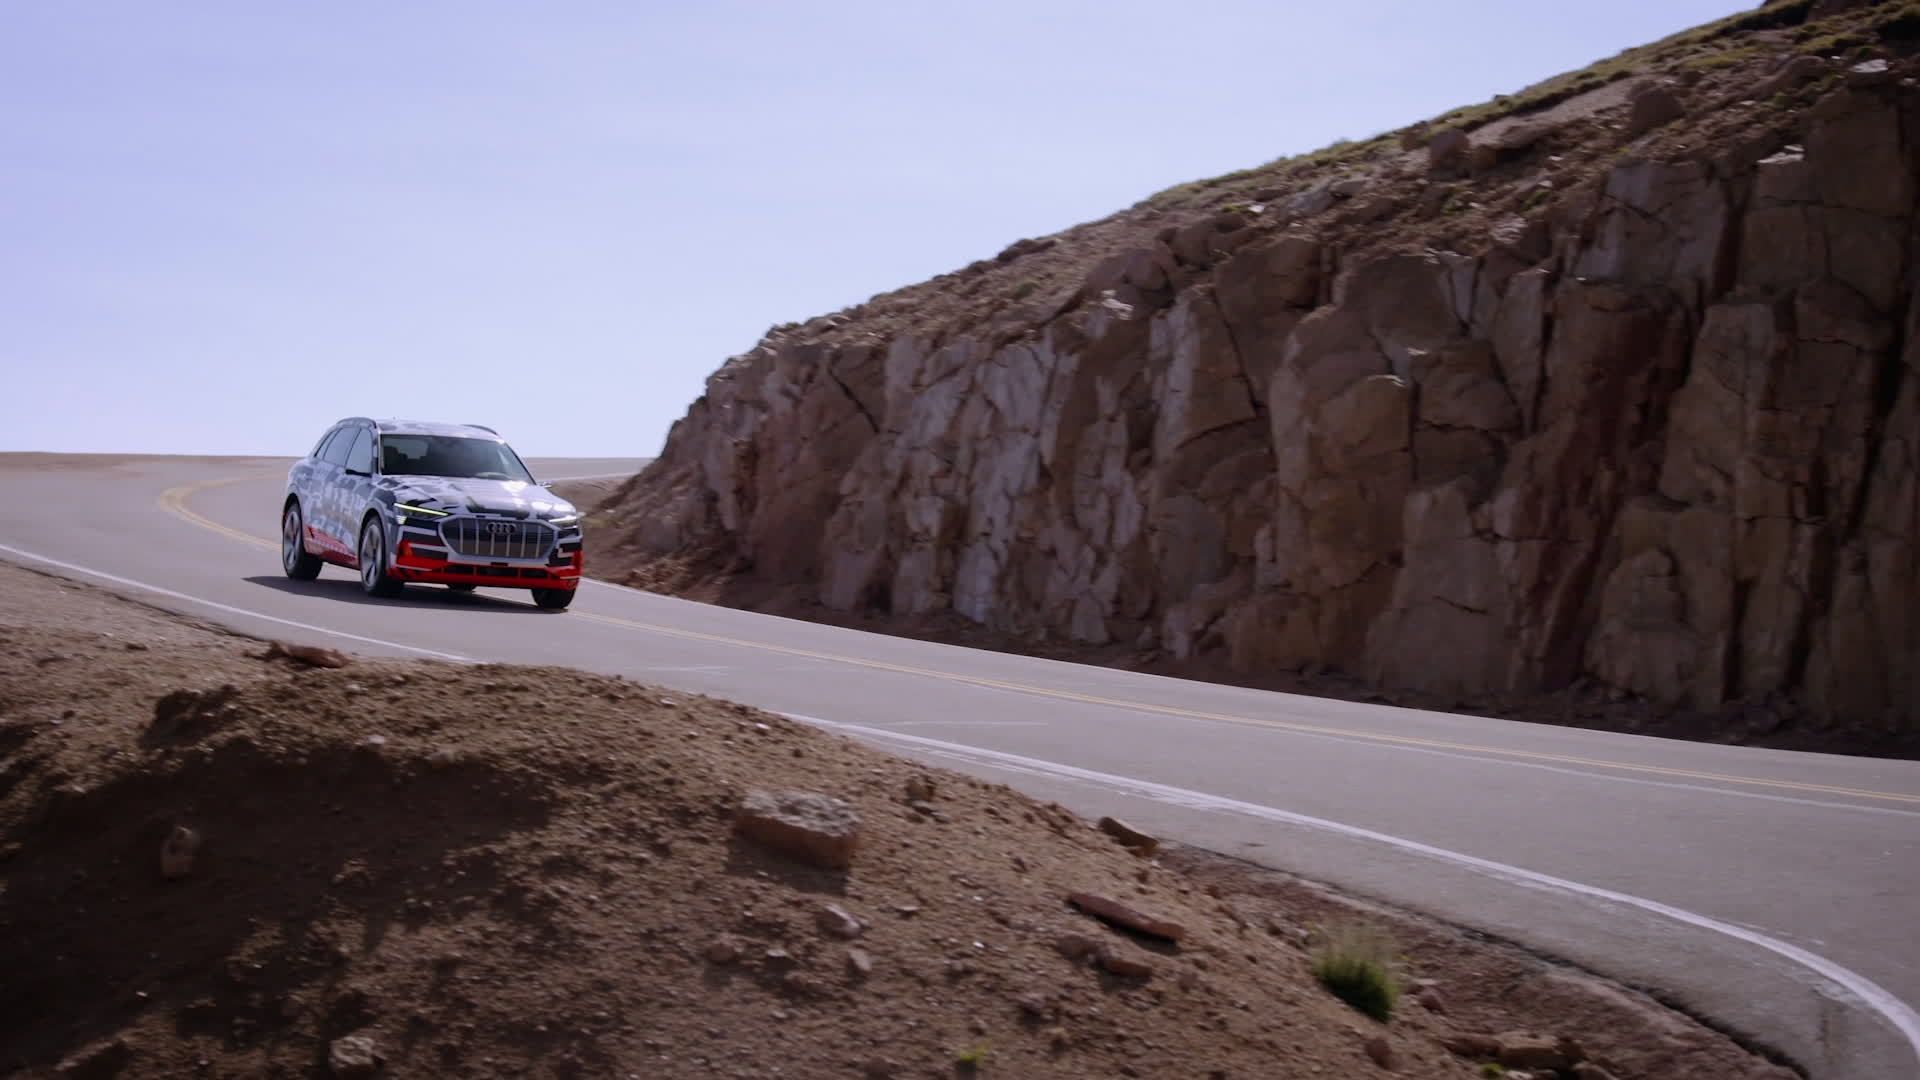 Going downhill – the Audi e-tron prototype braking test at Pikes Peak